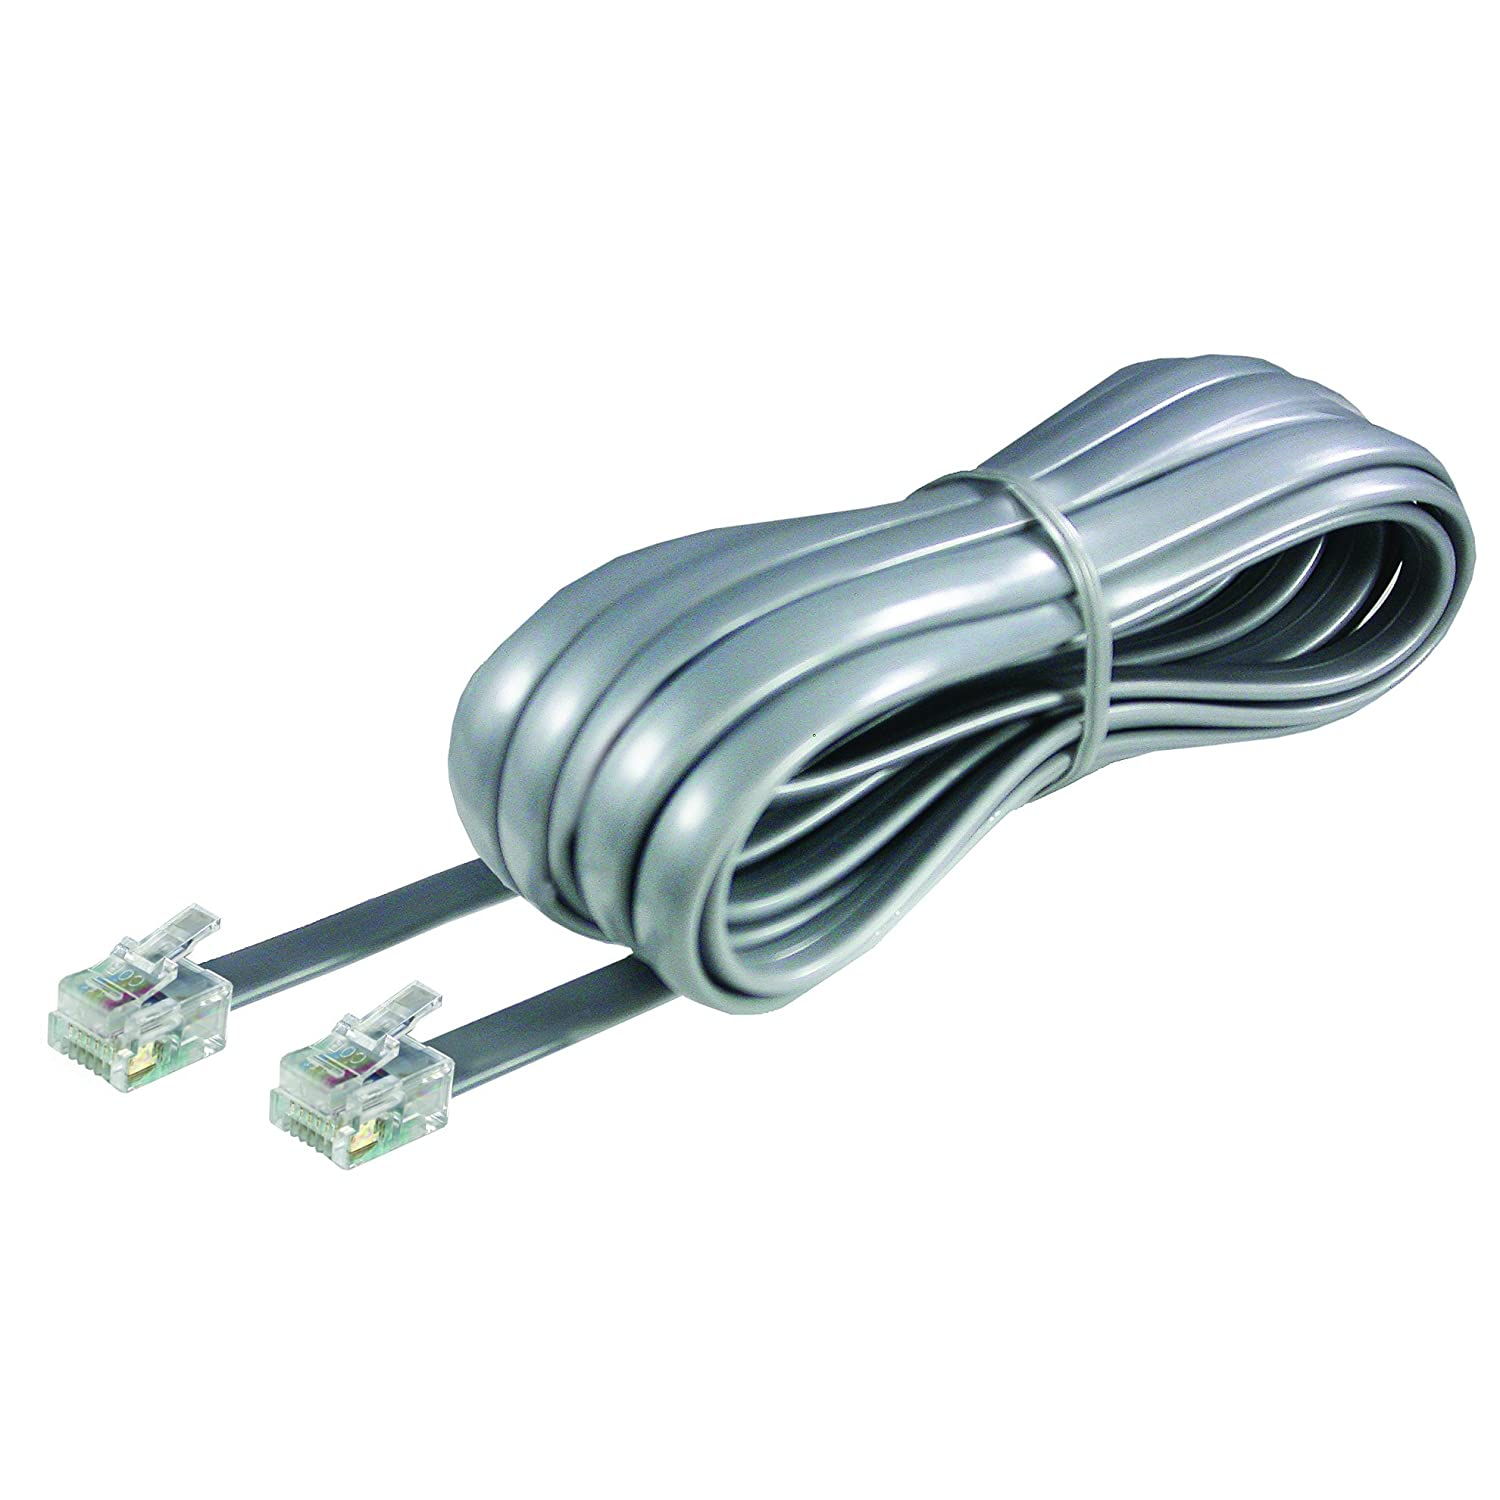 Amazon.com: Softalk Phone Line Cord 15-Feet Silver Landline ...